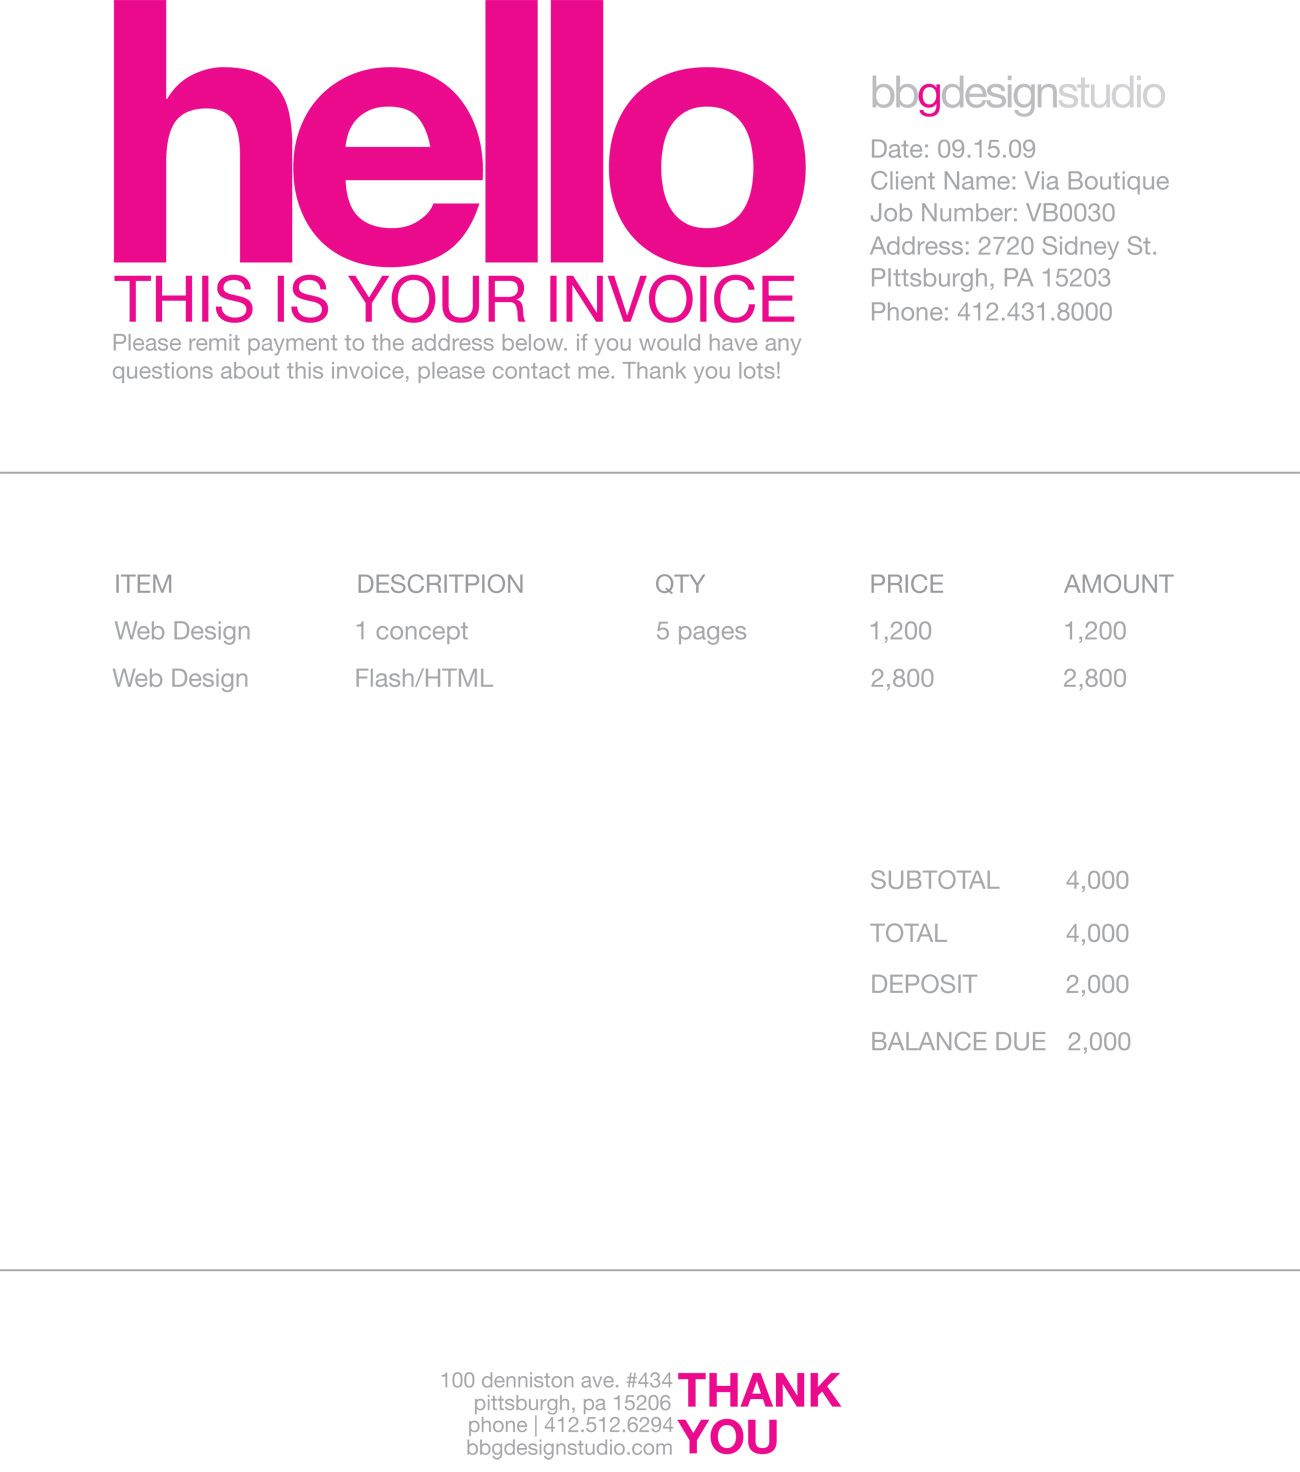 Totallocalus  Sweet  Images About Invoice Design On Pinterest With Exciting Invoice Template Word  Besides Professional Invoice Template Word Furthermore What Is A Tax Invoice With Attractive Find Car Invoice Price Also Creating An Invoice In Excel In Addition Contract Invoice Template And Freelance Graphic Design Invoice As Well As Sample Legal Invoice Additionally Create A Paypal Invoice From Pinterestcom With Totallocalus  Exciting  Images About Invoice Design On Pinterest With Attractive Invoice Template Word  Besides Professional Invoice Template Word Furthermore What Is A Tax Invoice And Sweet Find Car Invoice Price Also Creating An Invoice In Excel In Addition Contract Invoice Template From Pinterestcom